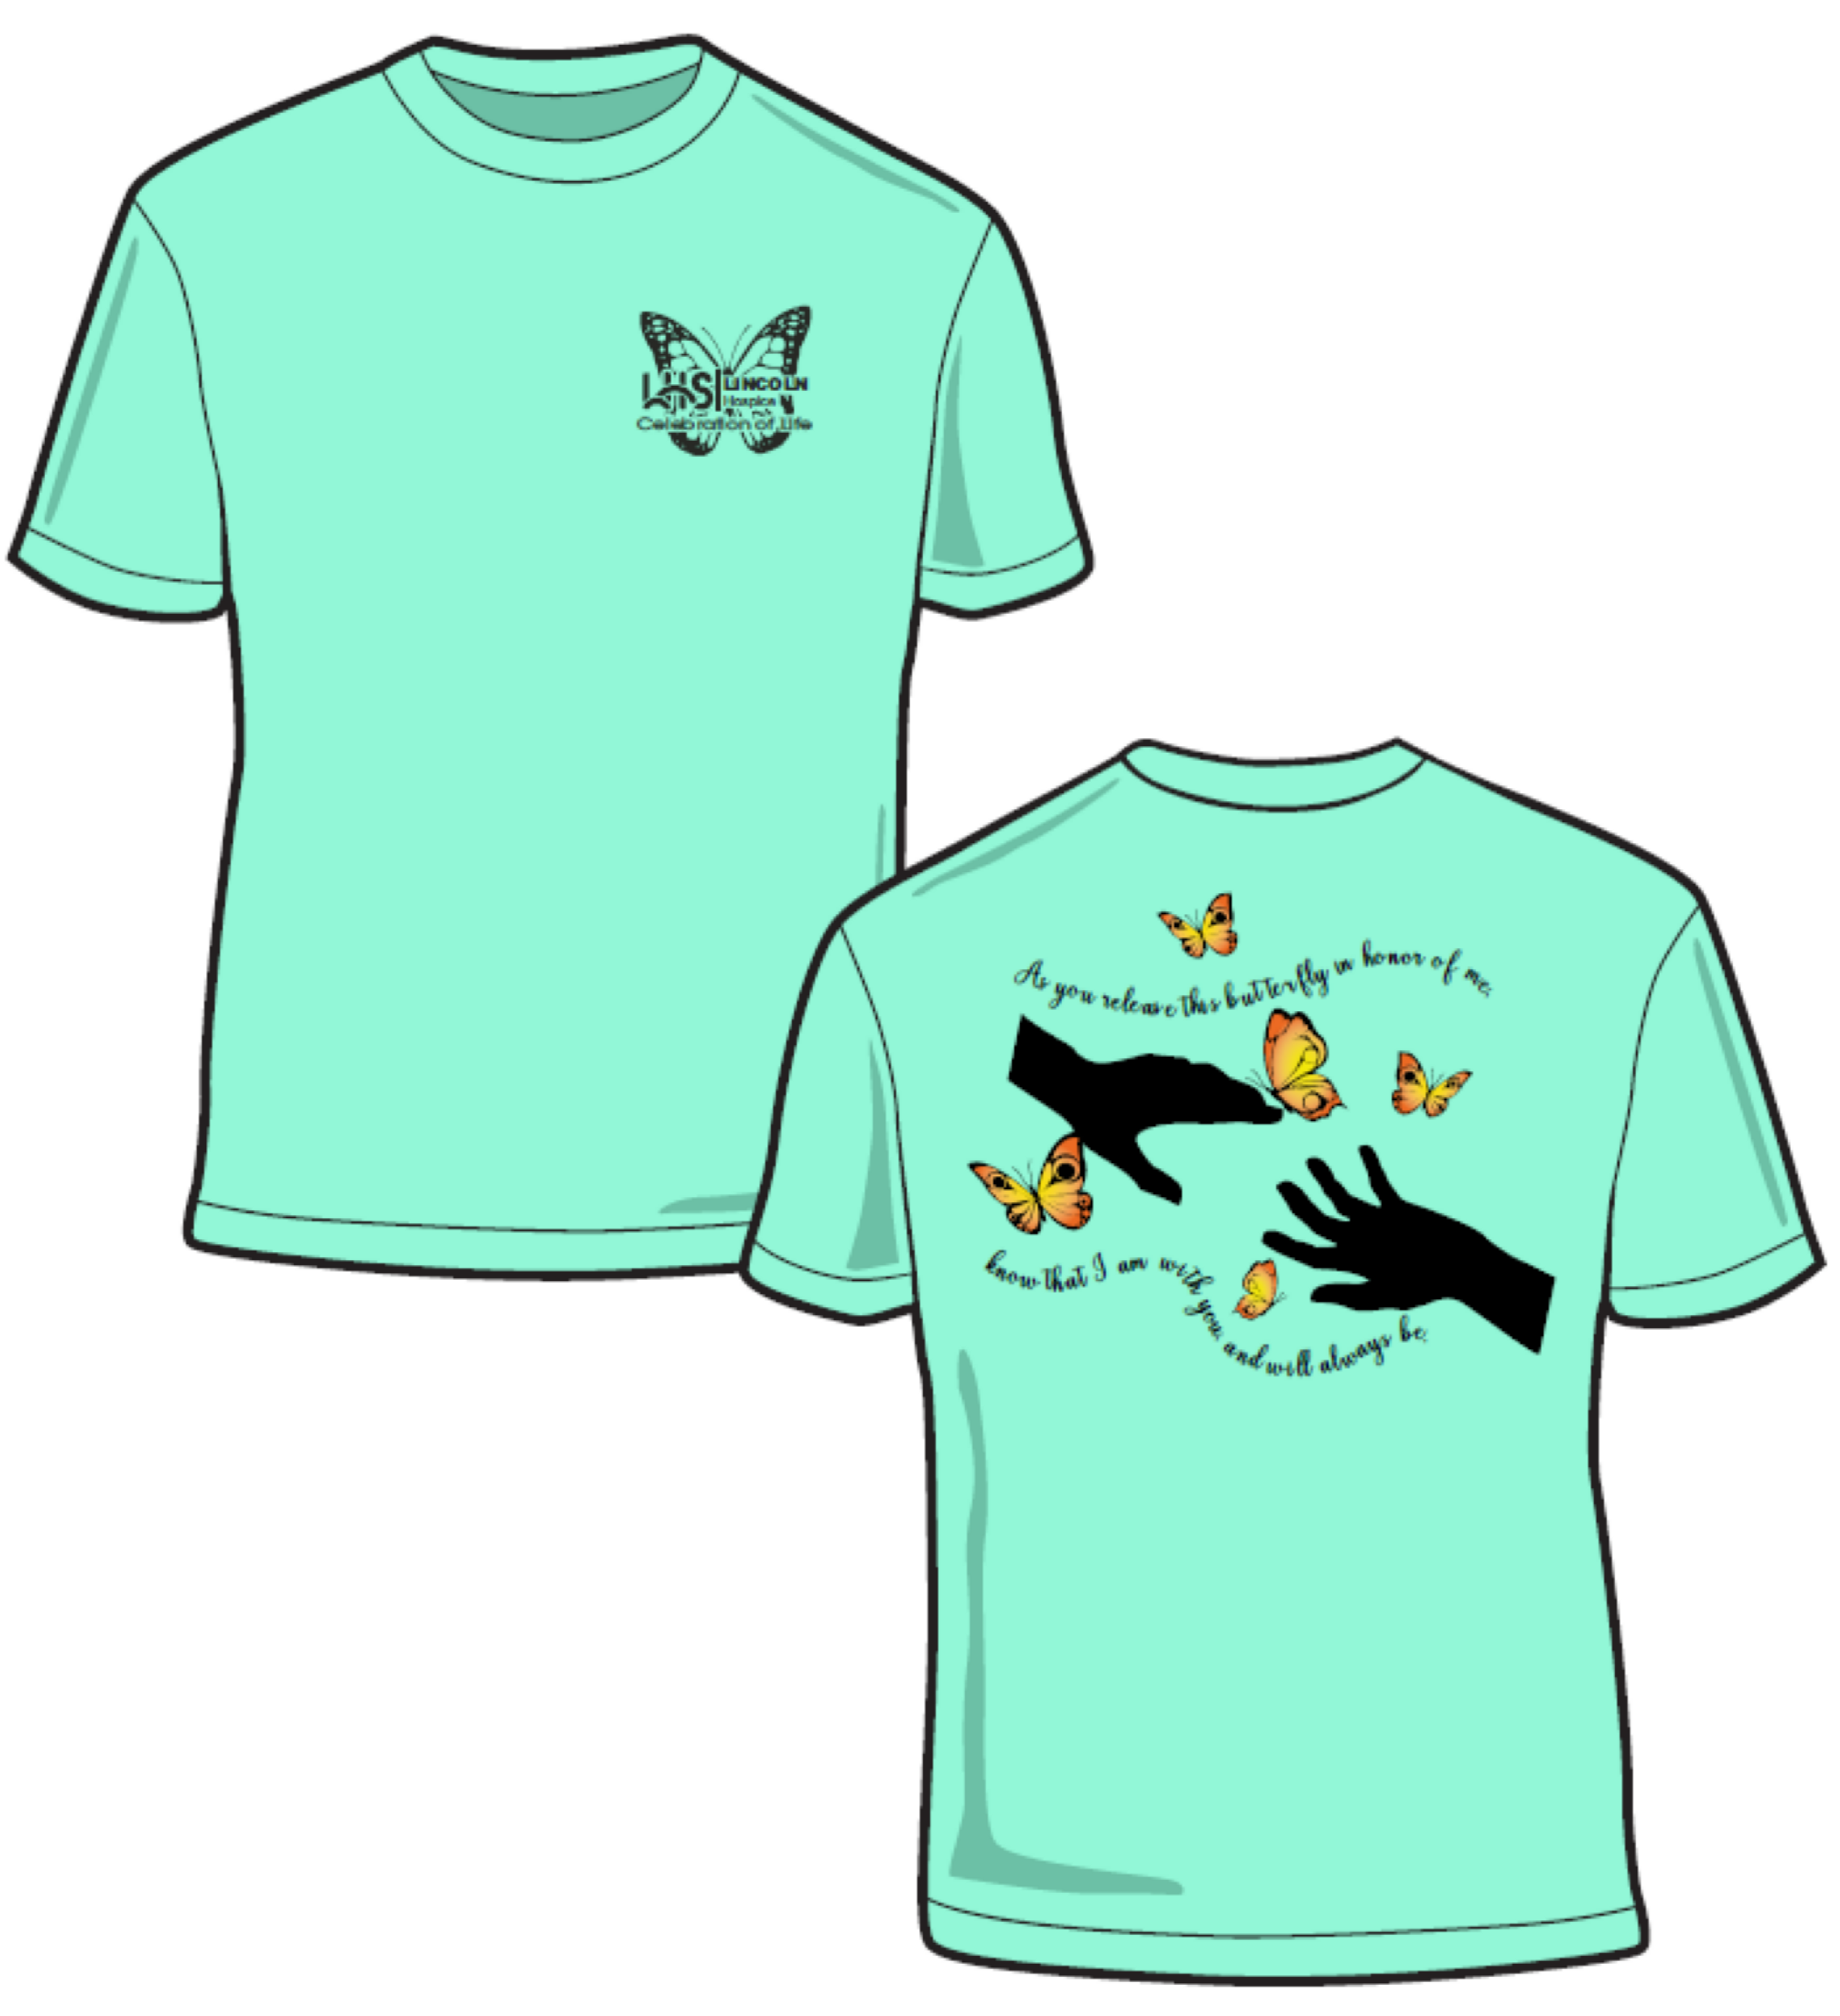 2020-butterfly-shirt-design-1